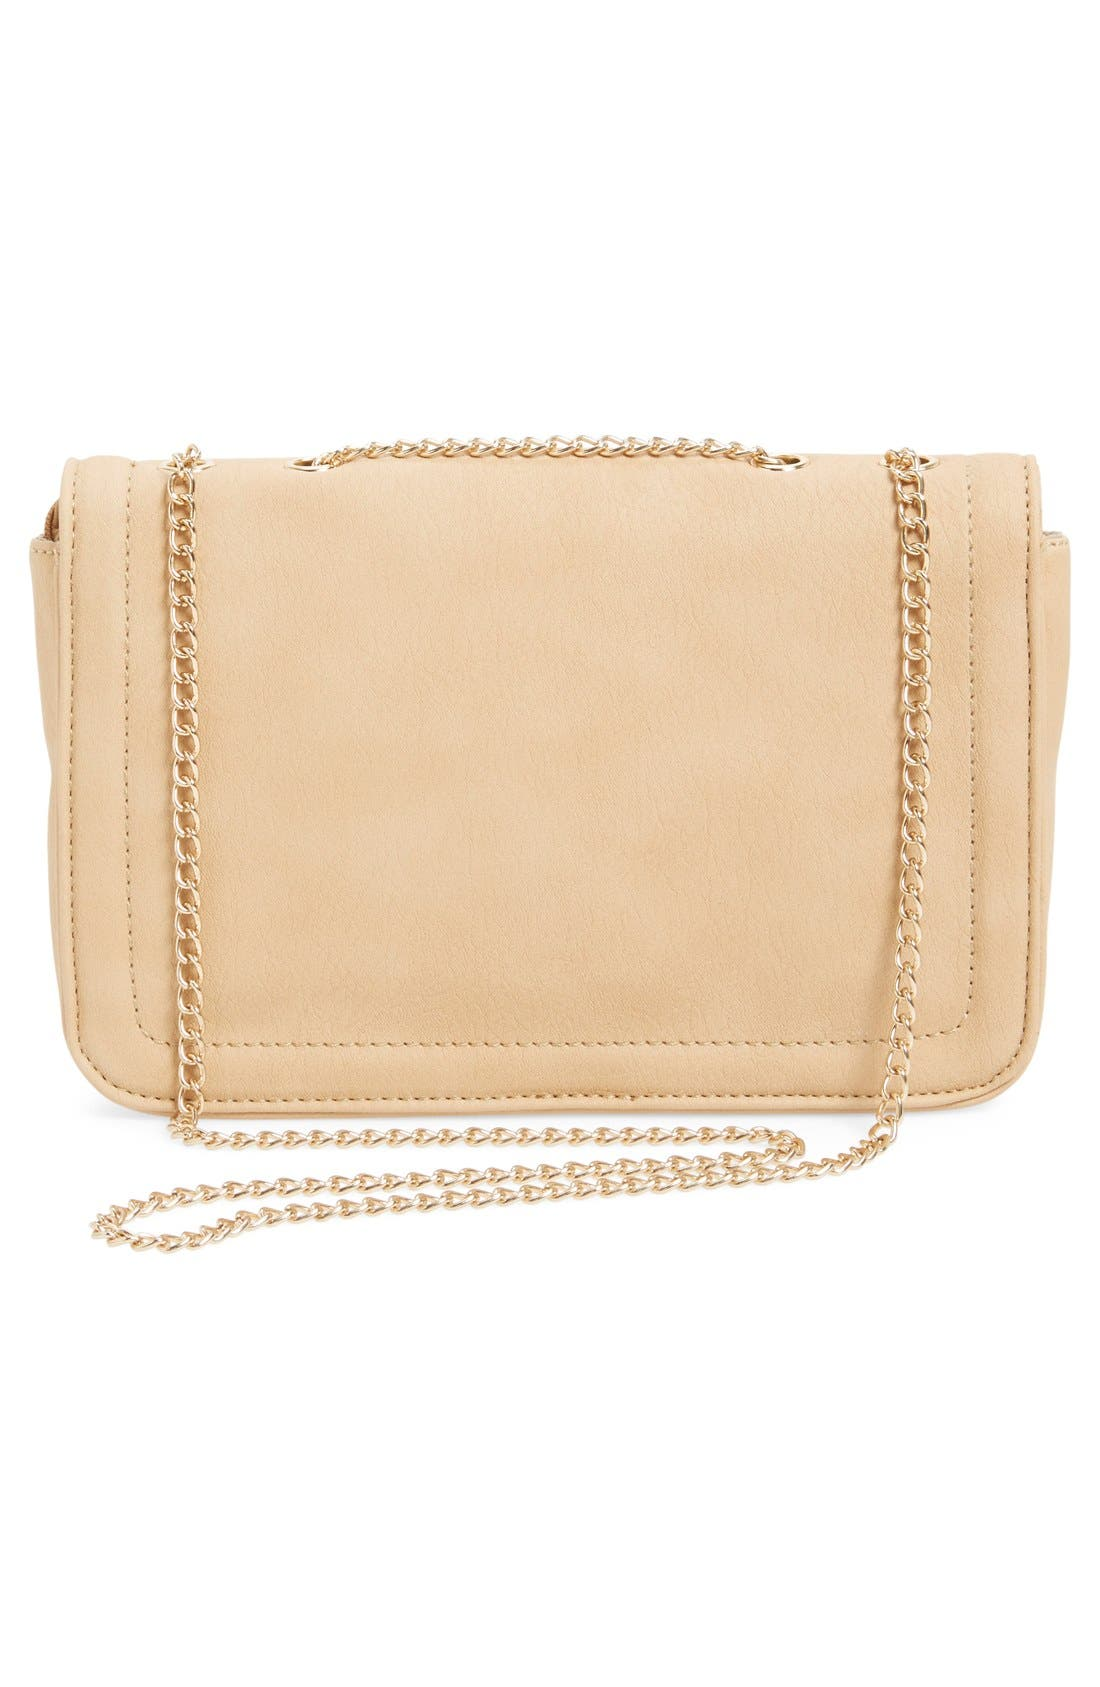 Quilted Faux Leather Crossbody Bag,                             Alternate thumbnail 3, color,                             Nude